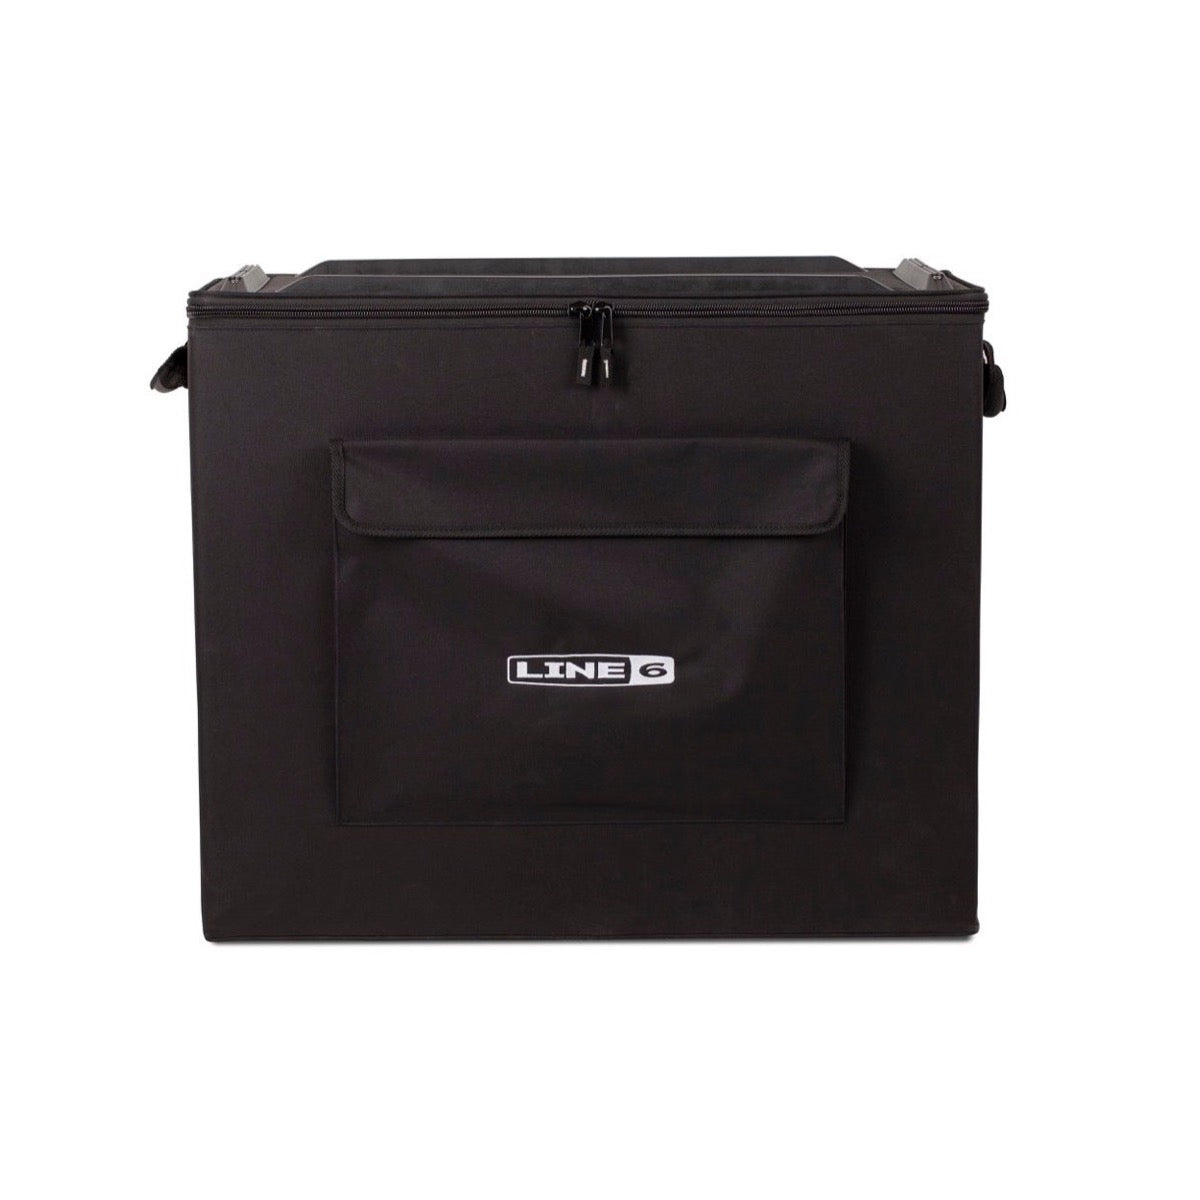 Line 6 Transporter Bag for Firehawk 1500 Amp